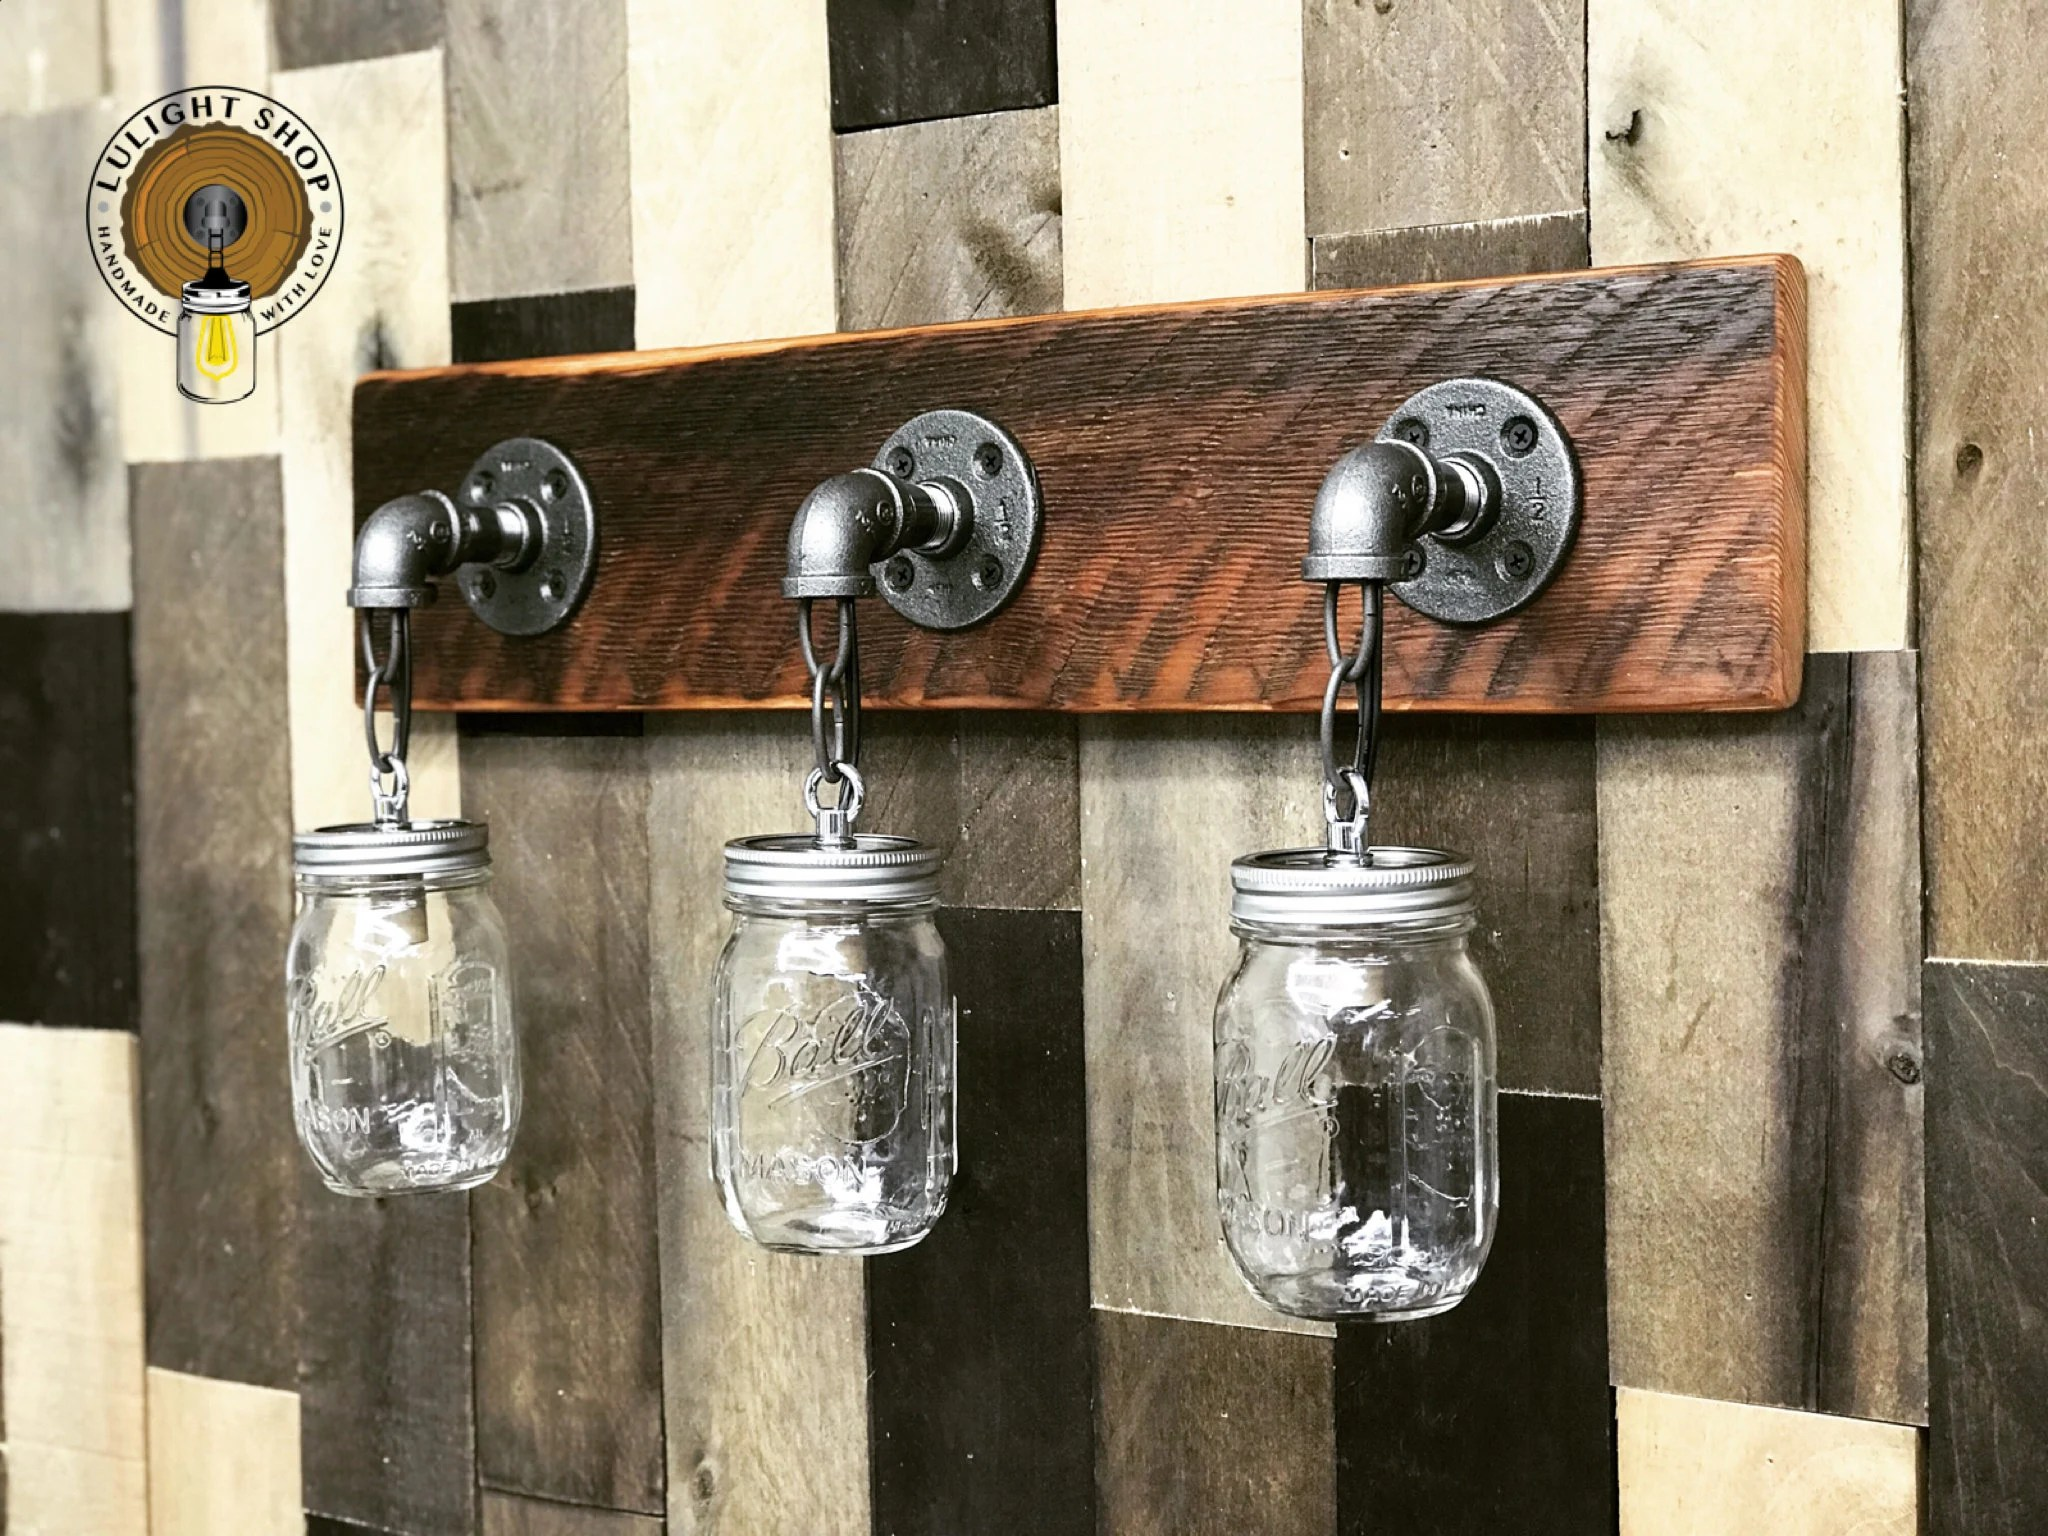 Mason Jar Bathroom Light Reclaimed Wood Mason Jar Light Fixture Bathroom Lights 3 Lights Fixture Vanity Lights Wall Lighting Country Rustic Farmhouse Decor Lamp